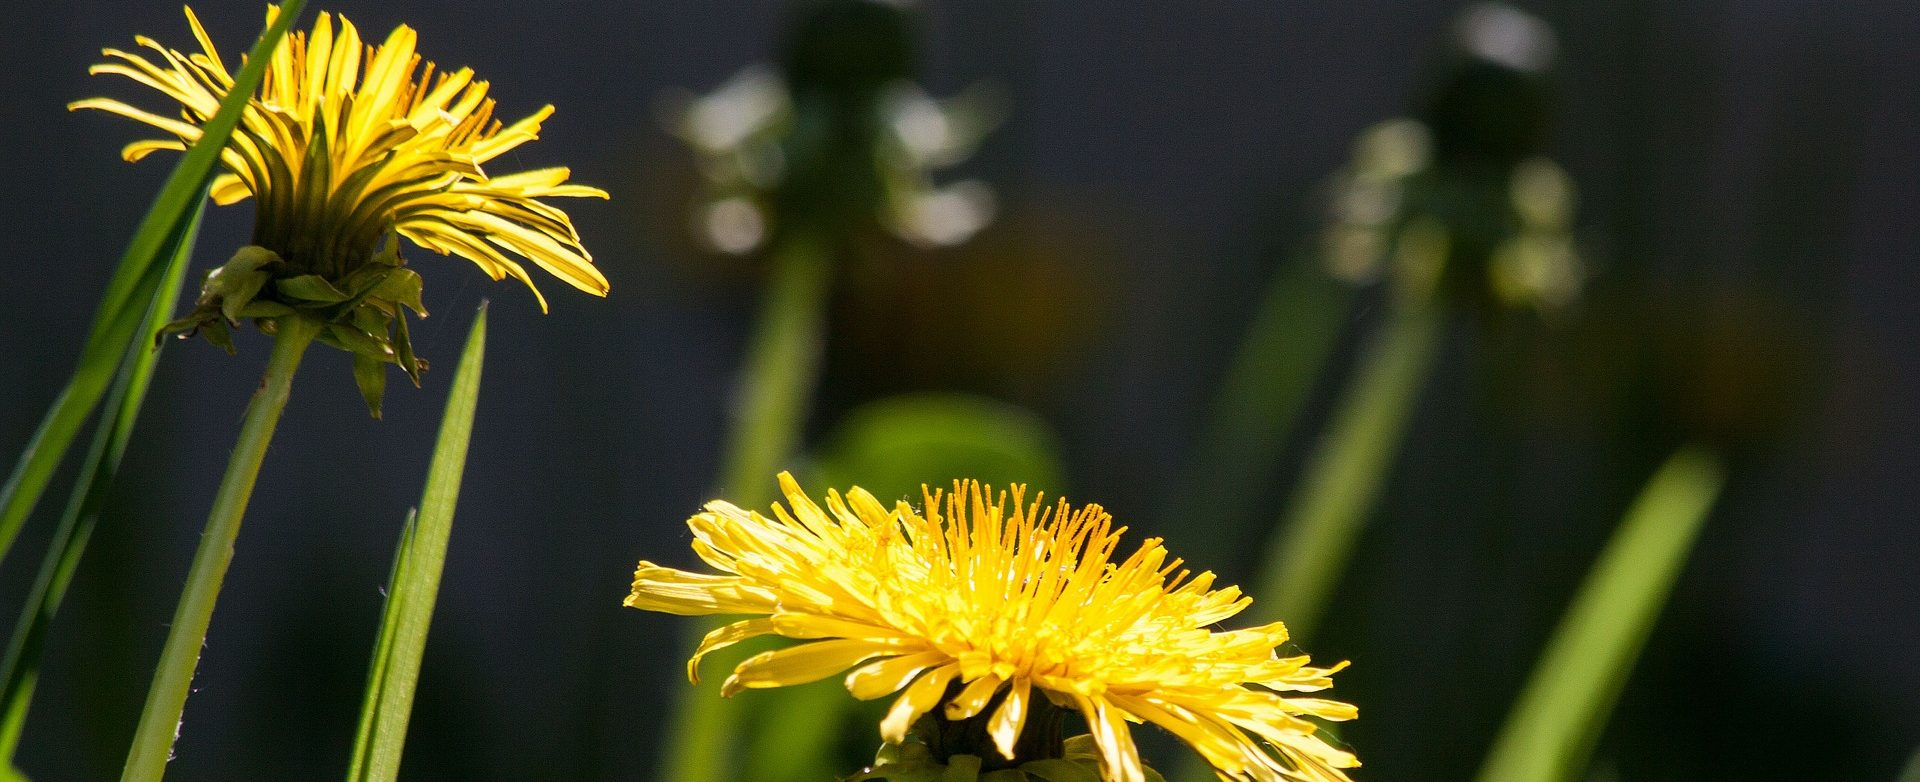 common-dandelion-331701_1920